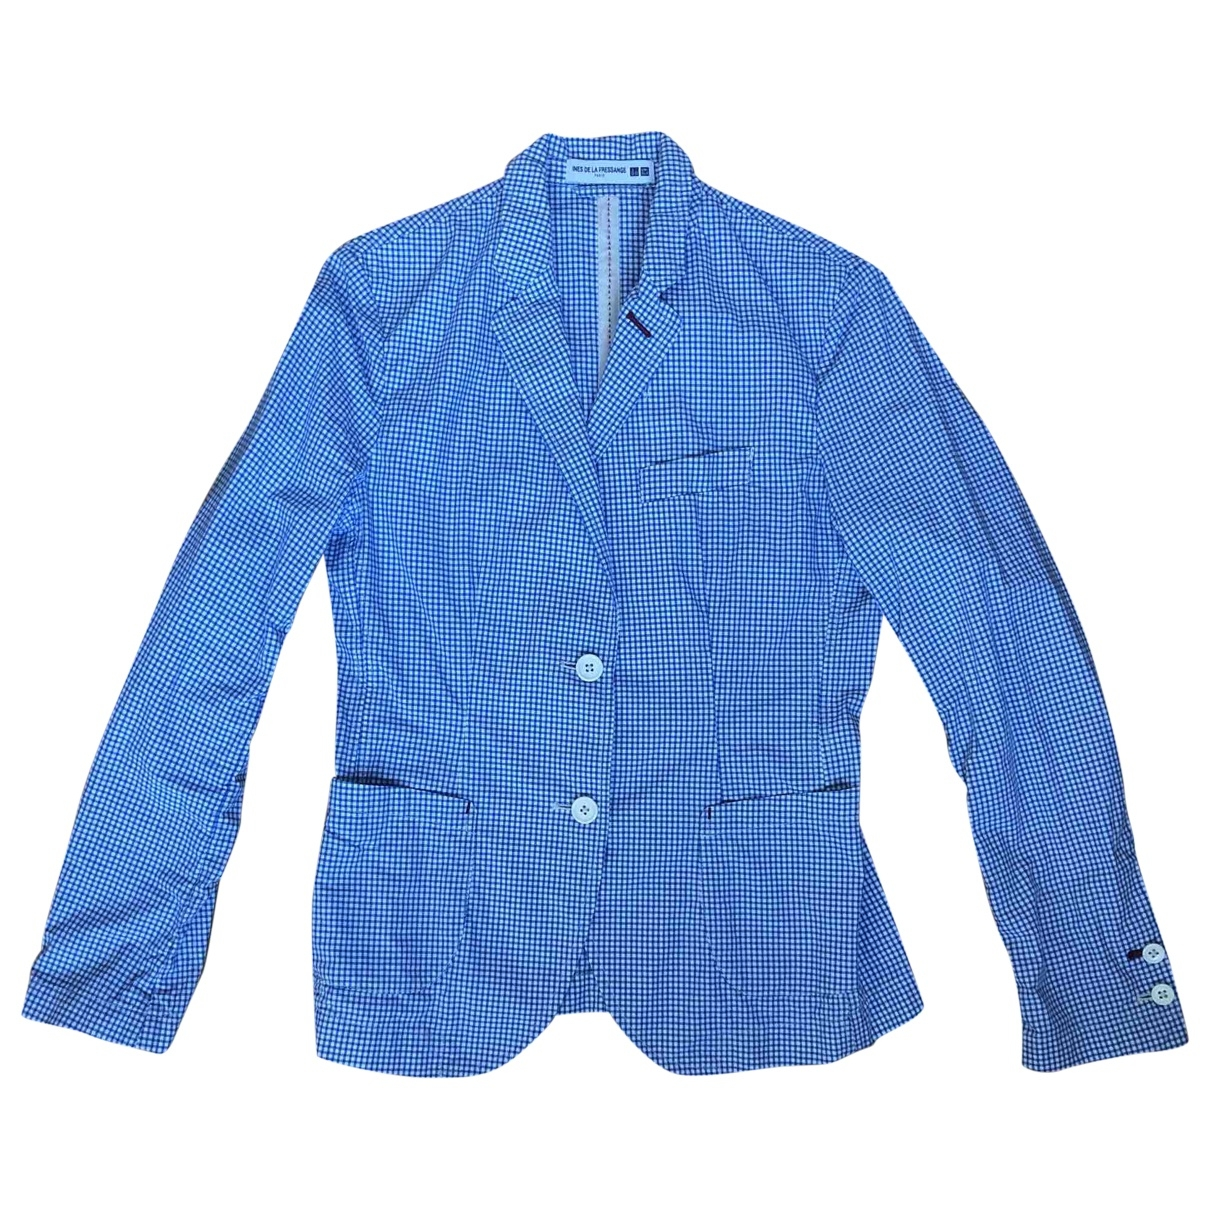 Uniqlo \N Blue Cotton jacket for Women XS International